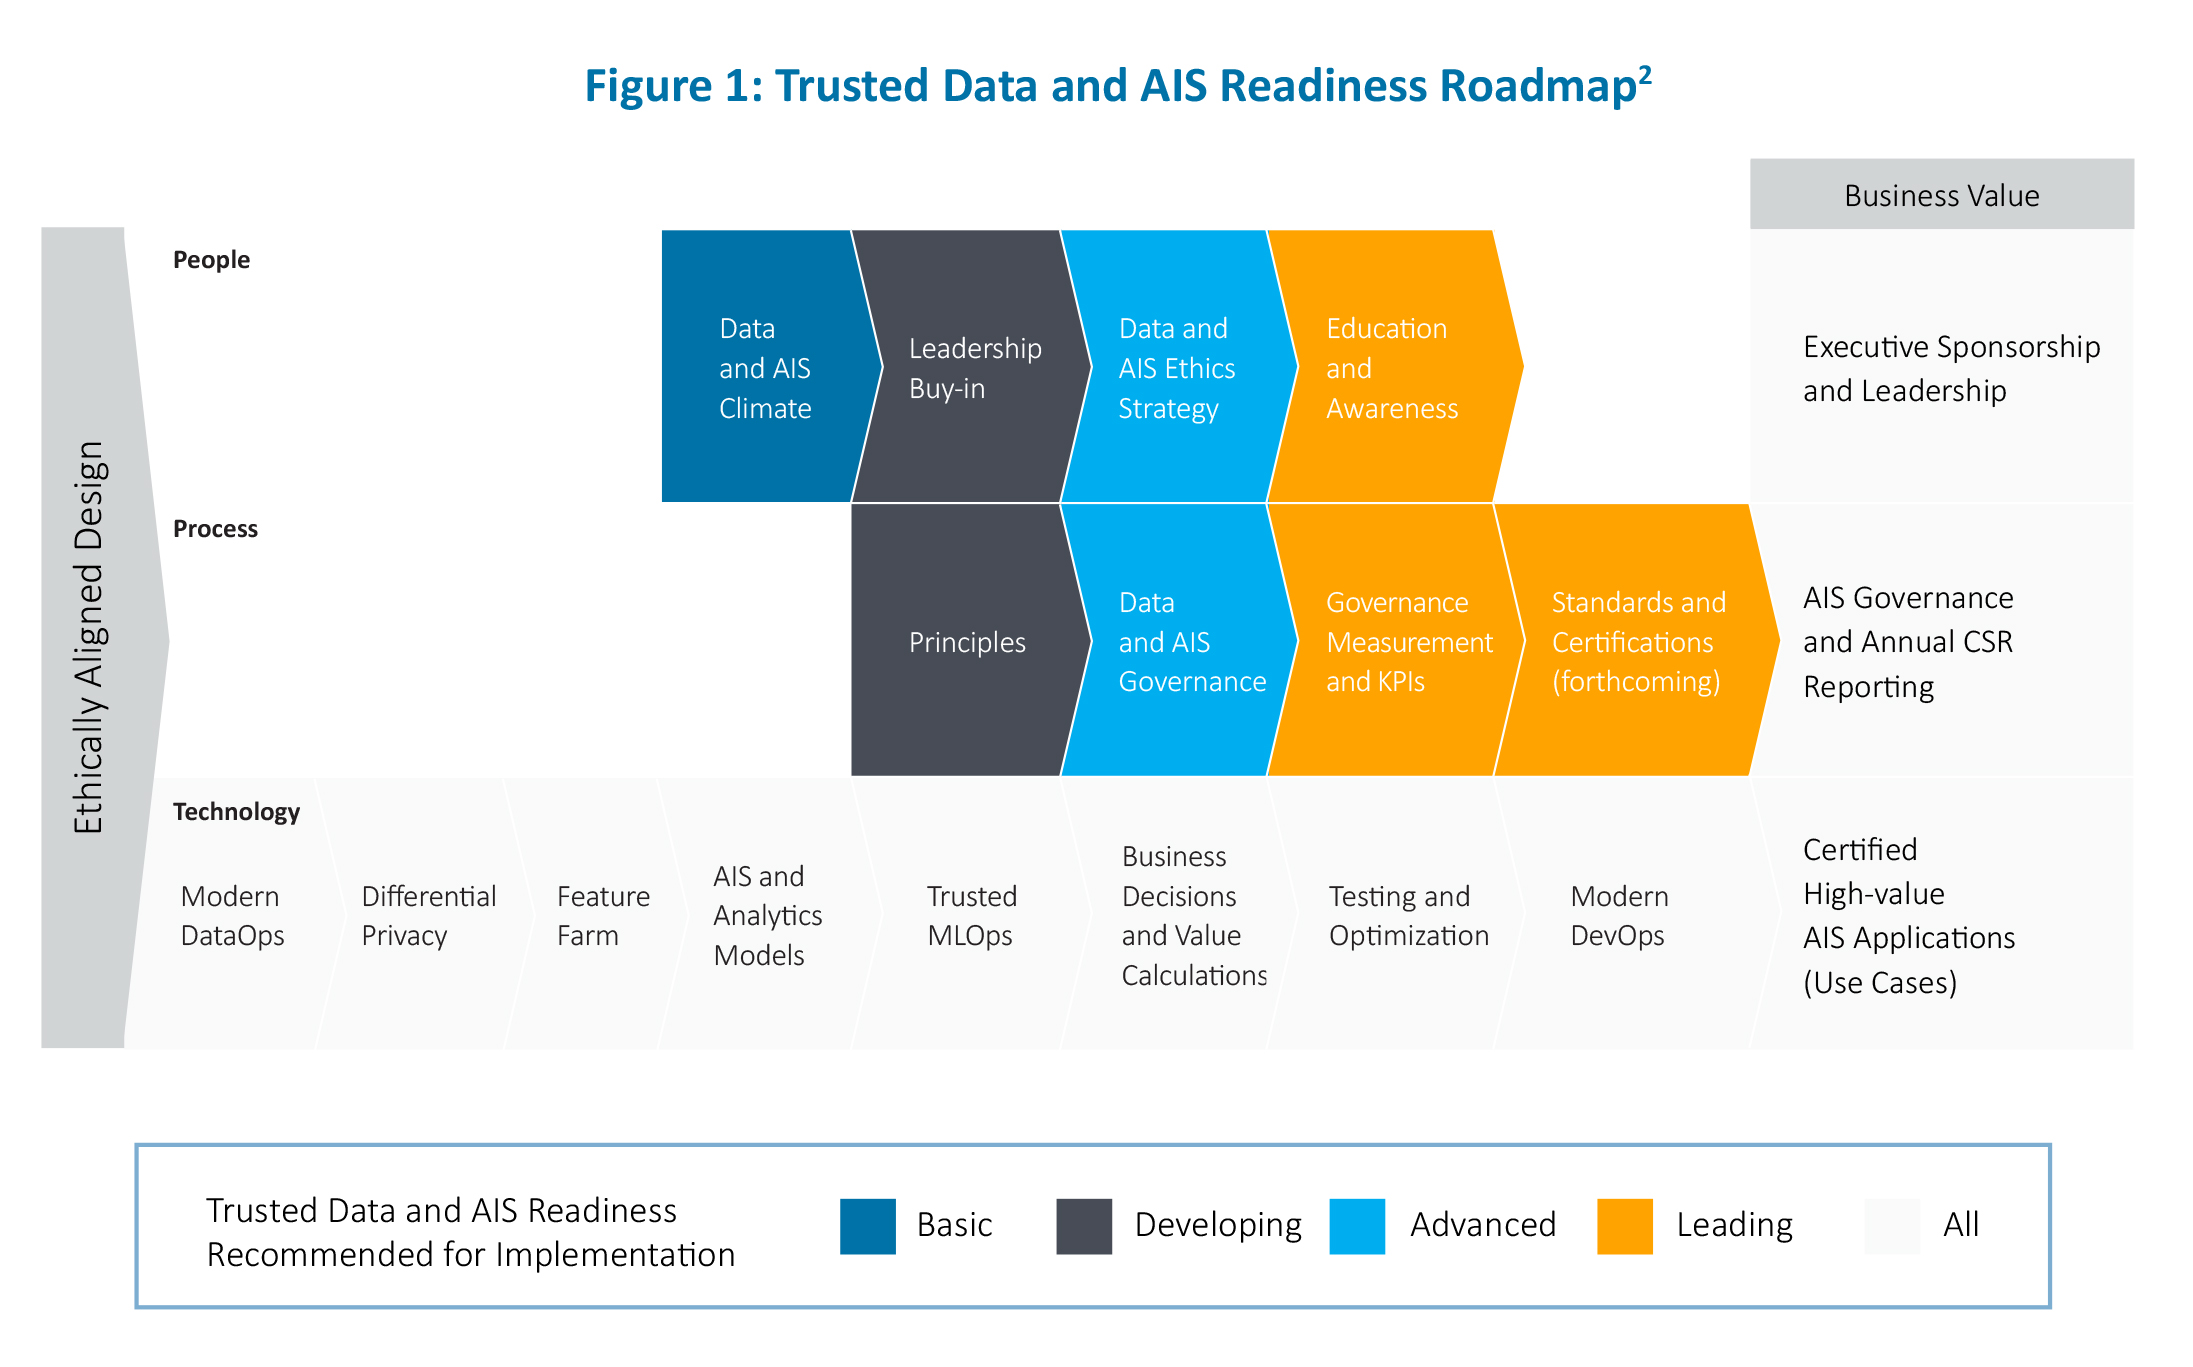 Trusted data and AIS readiness road-map